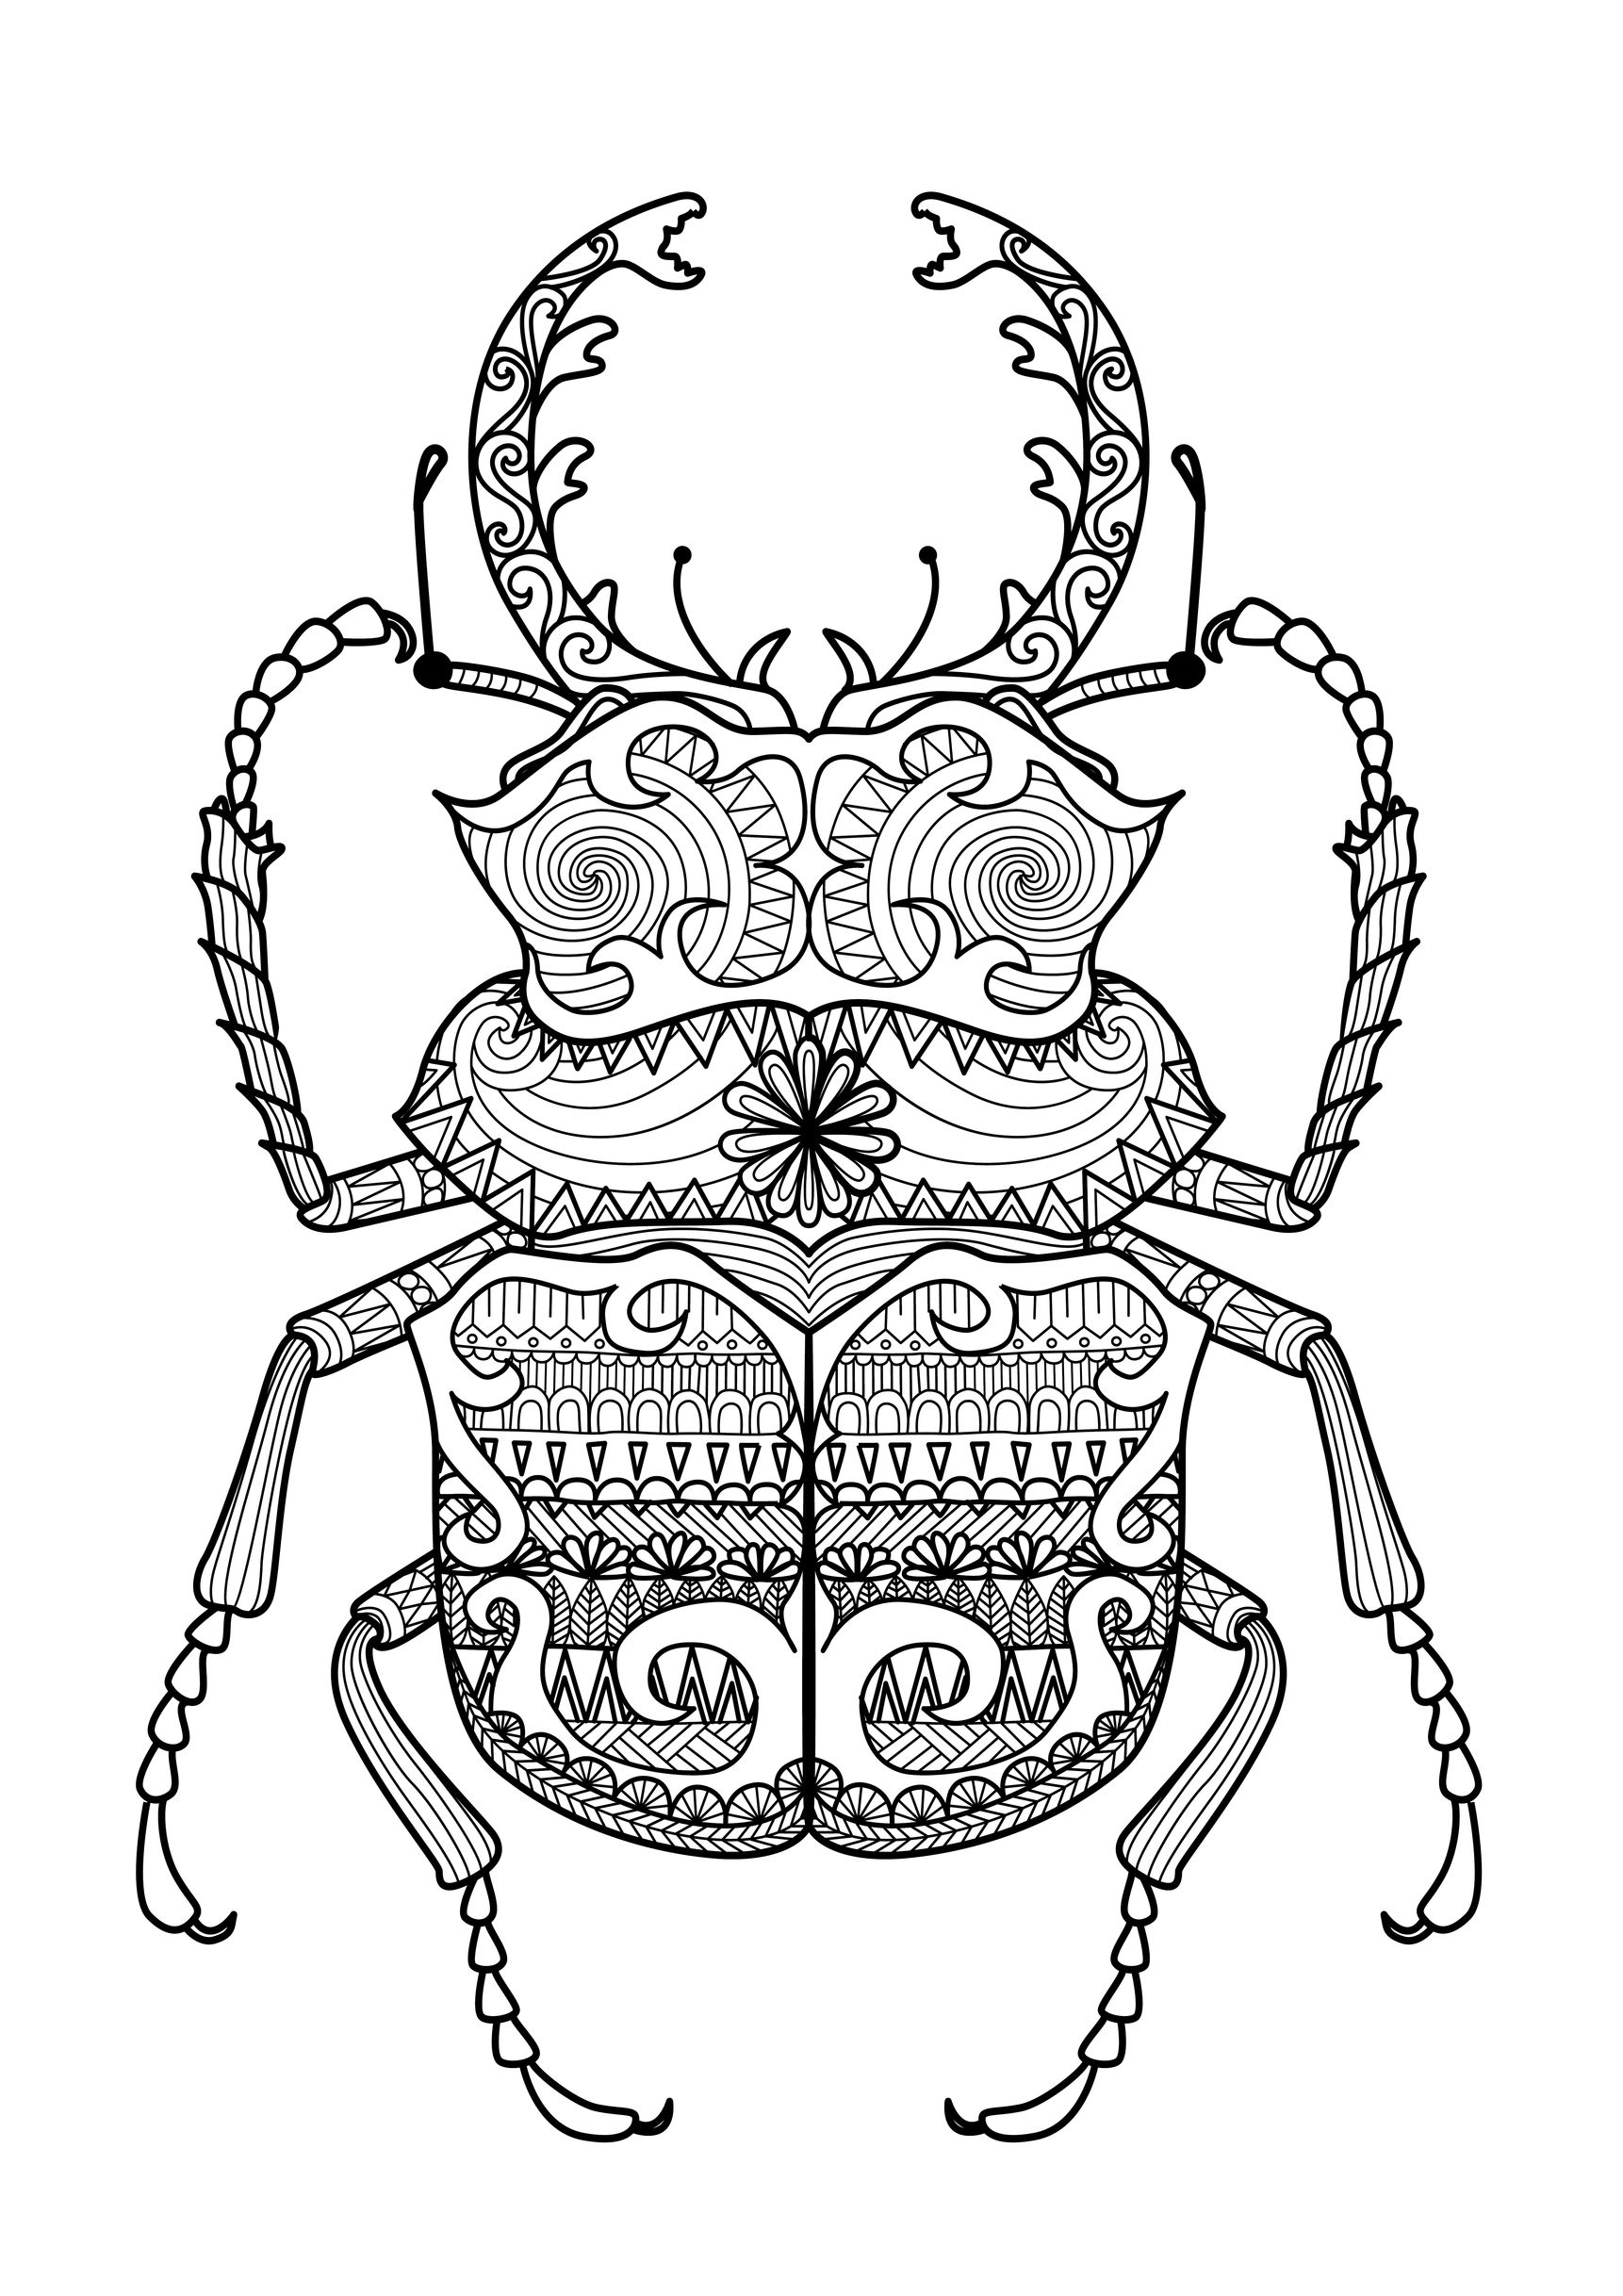 Good Coloring Page : Zentangle Beetle. Incredible Beetle With Extraordinary  Patterns